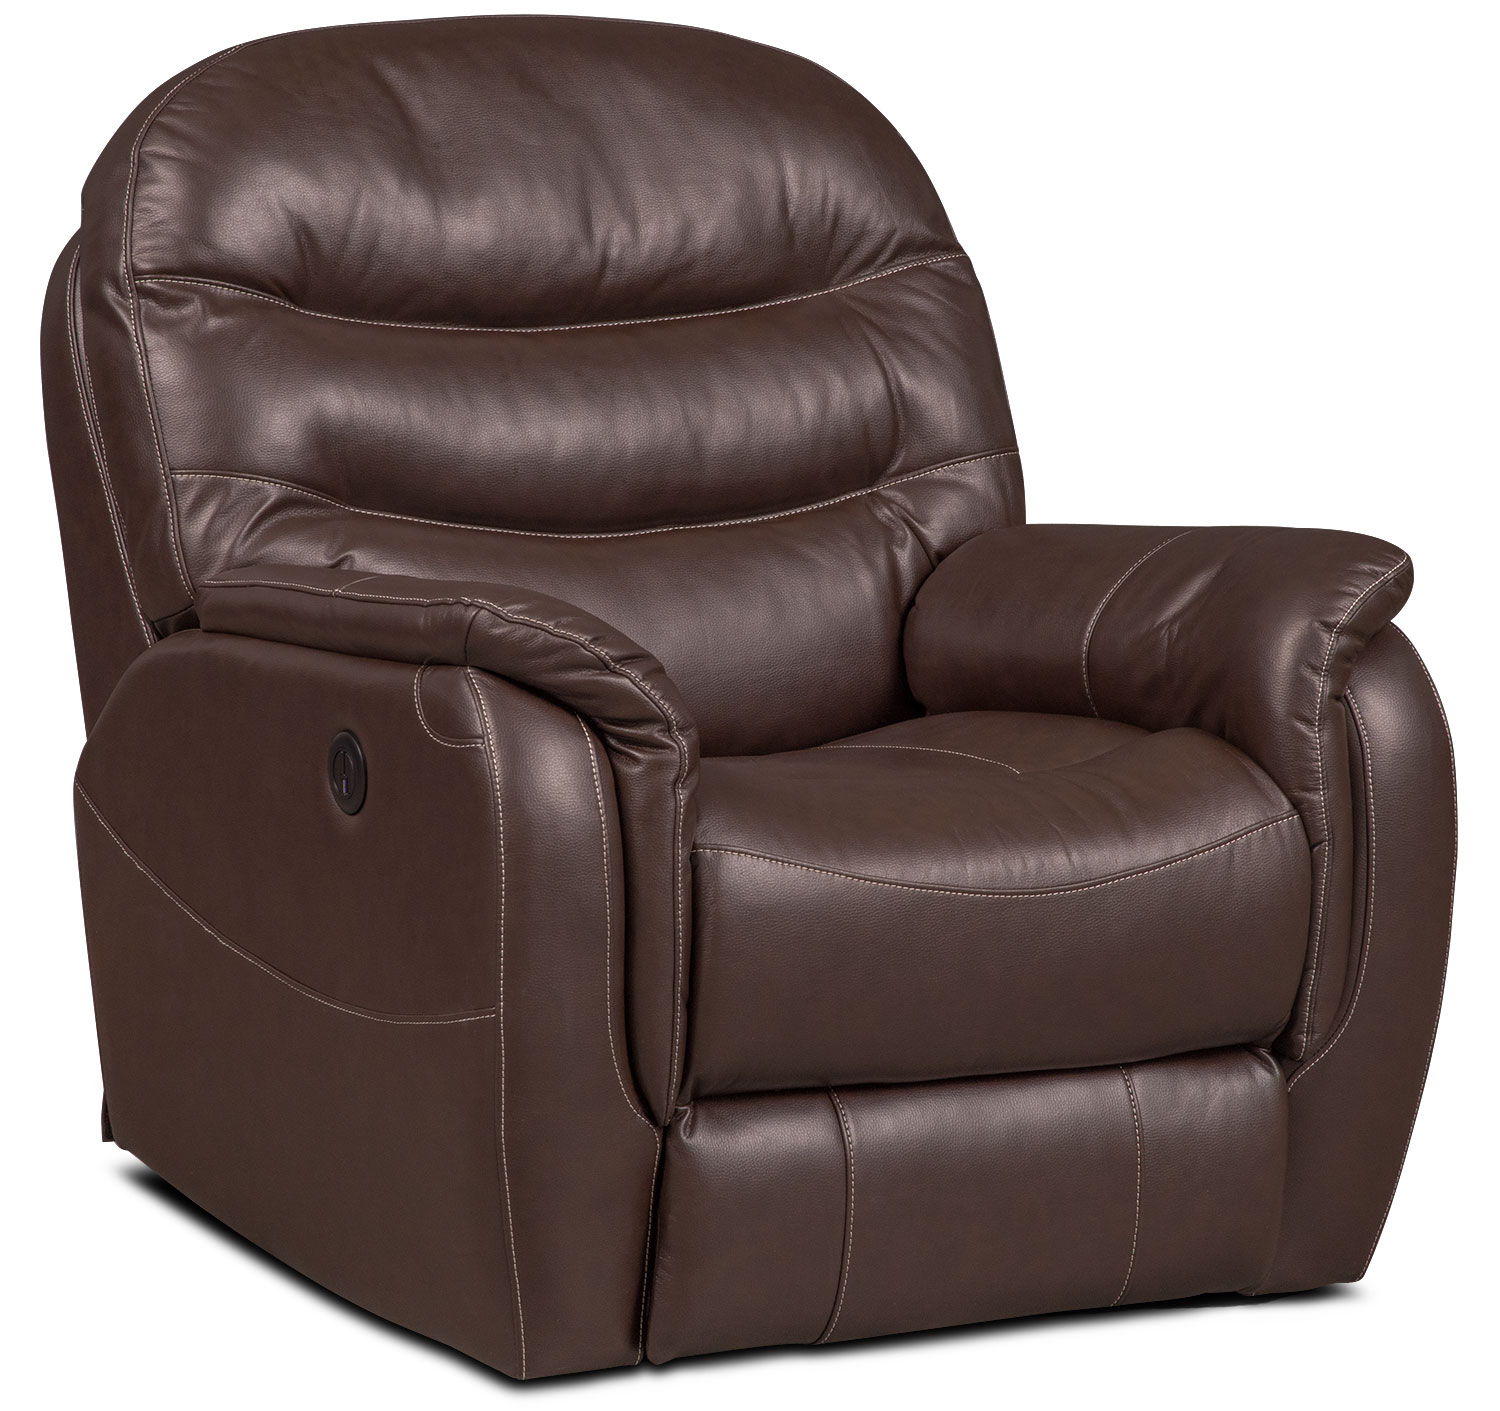 Milo Power Recliner - Chocolate